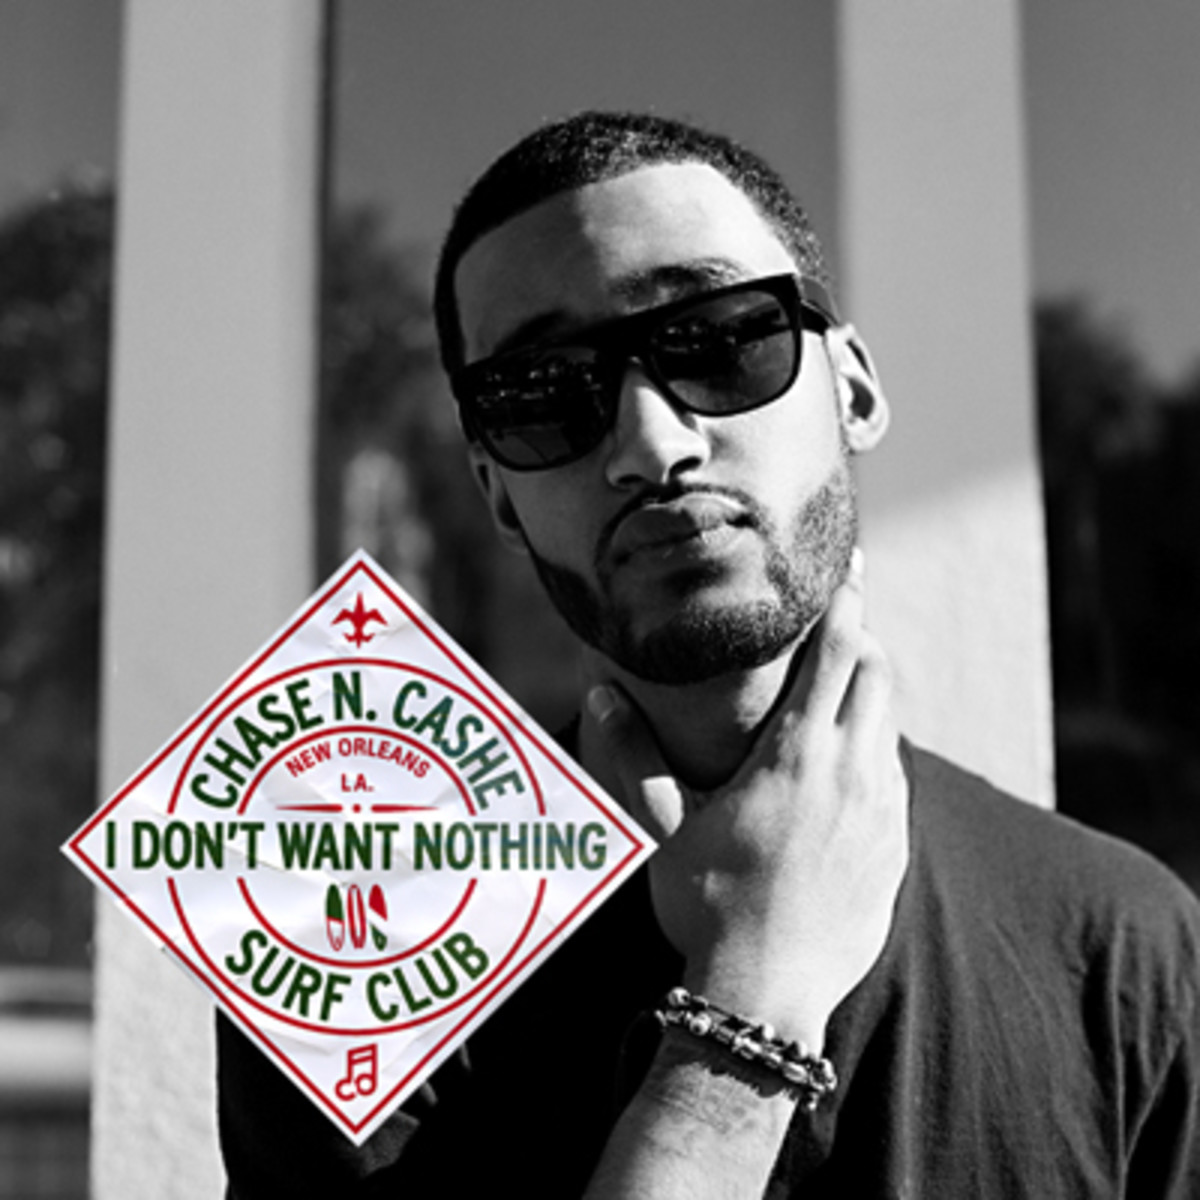 68f43fe95818 Chase N. Cashe (of Surf Club) - I Don t Want Nothing - DJBooth